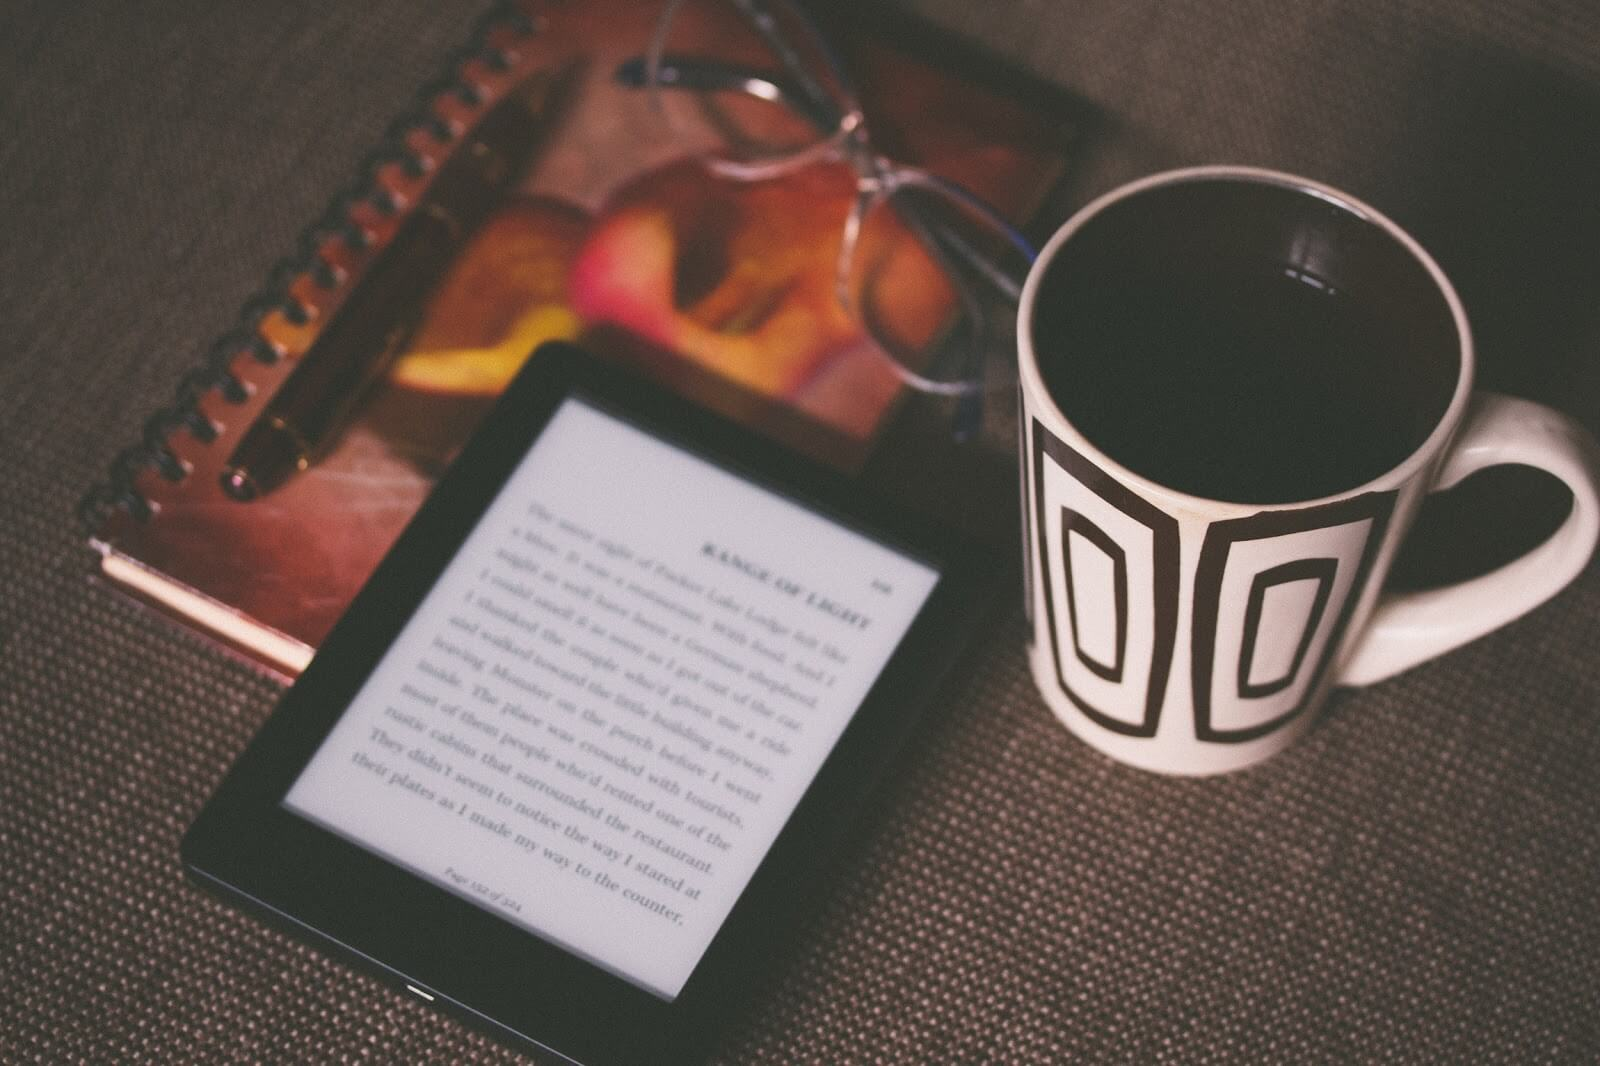 ebook reading with coffee, what's an ebook